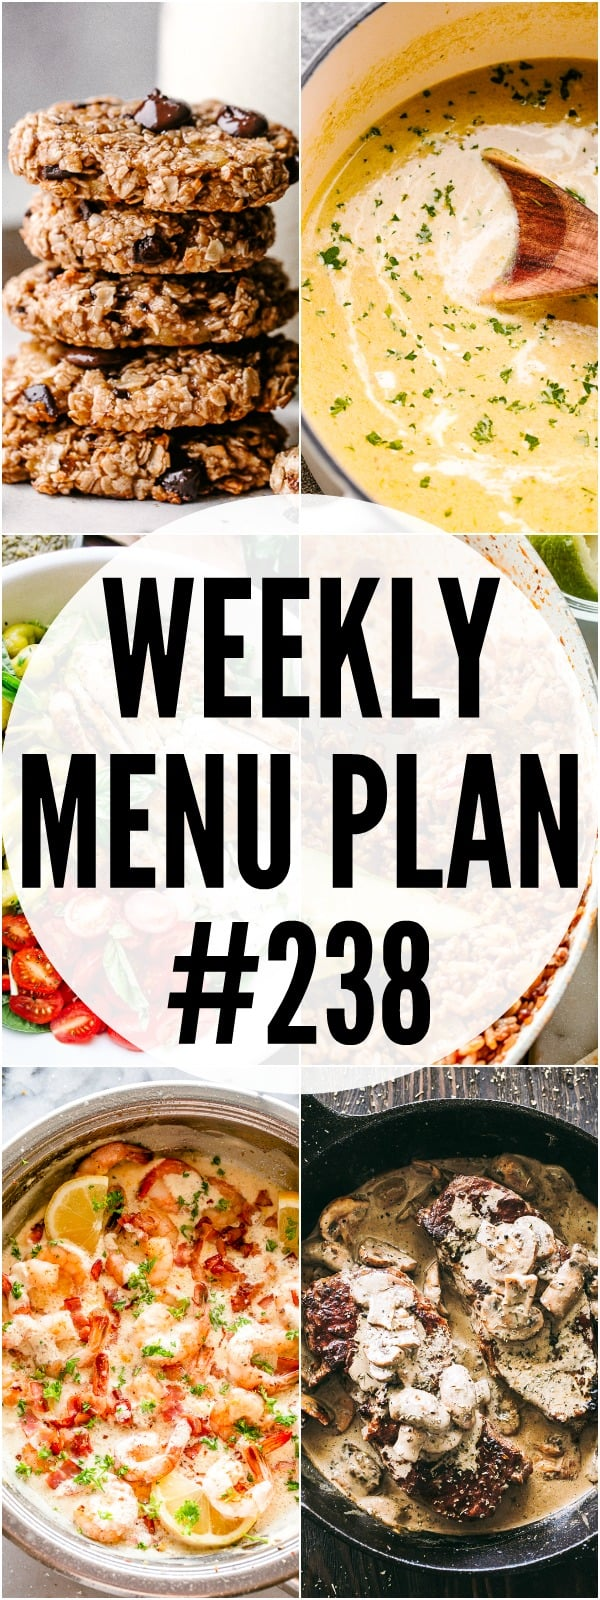 WEEKLY MENU PLAN 238 PIN IMAGE